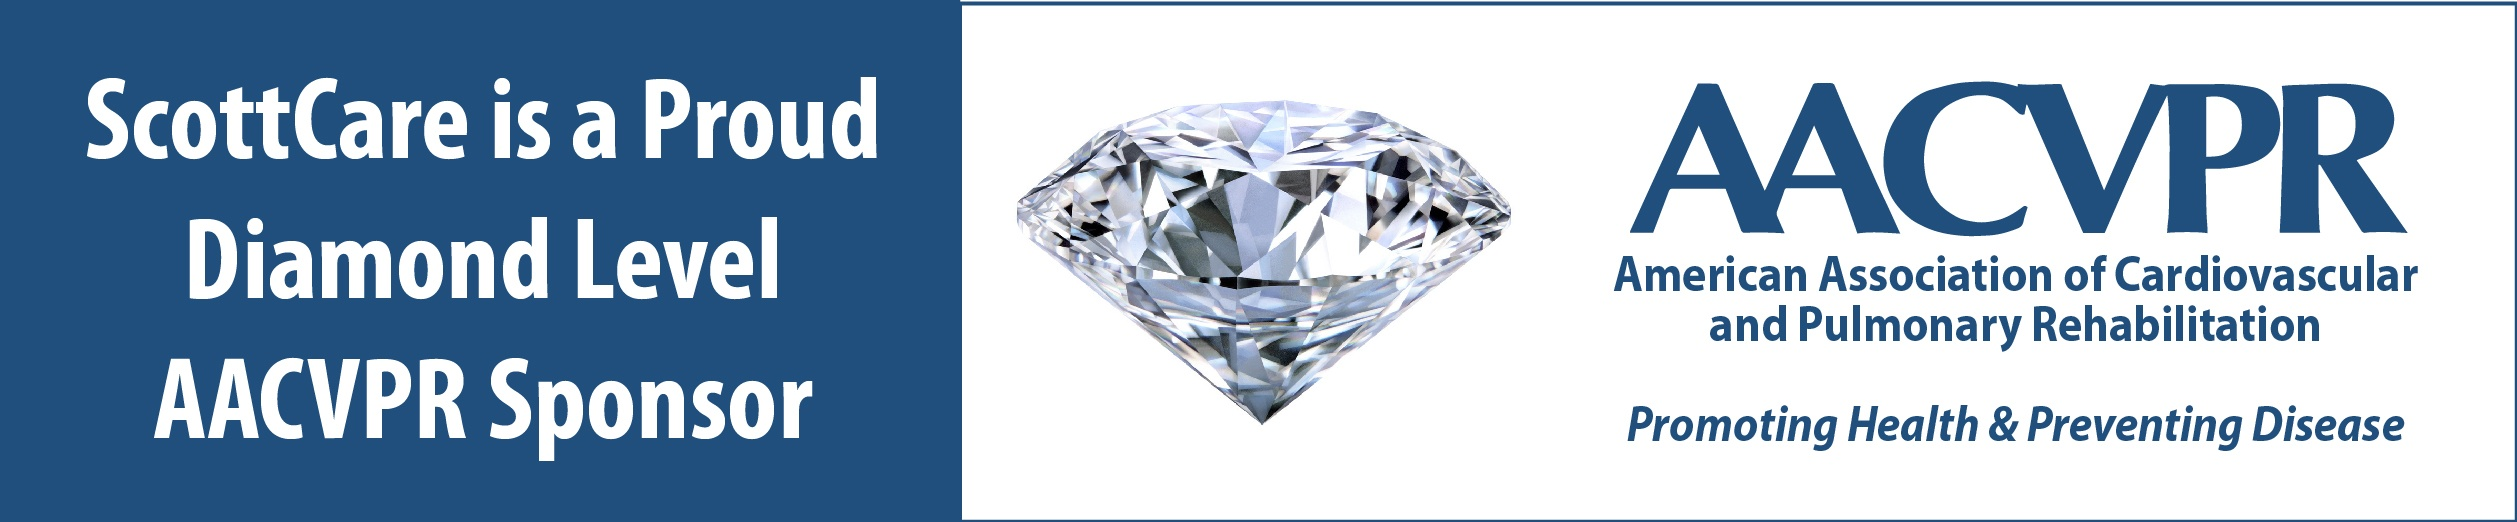 ScottCare is a Proud Diamond Level Supporter of AACVPR